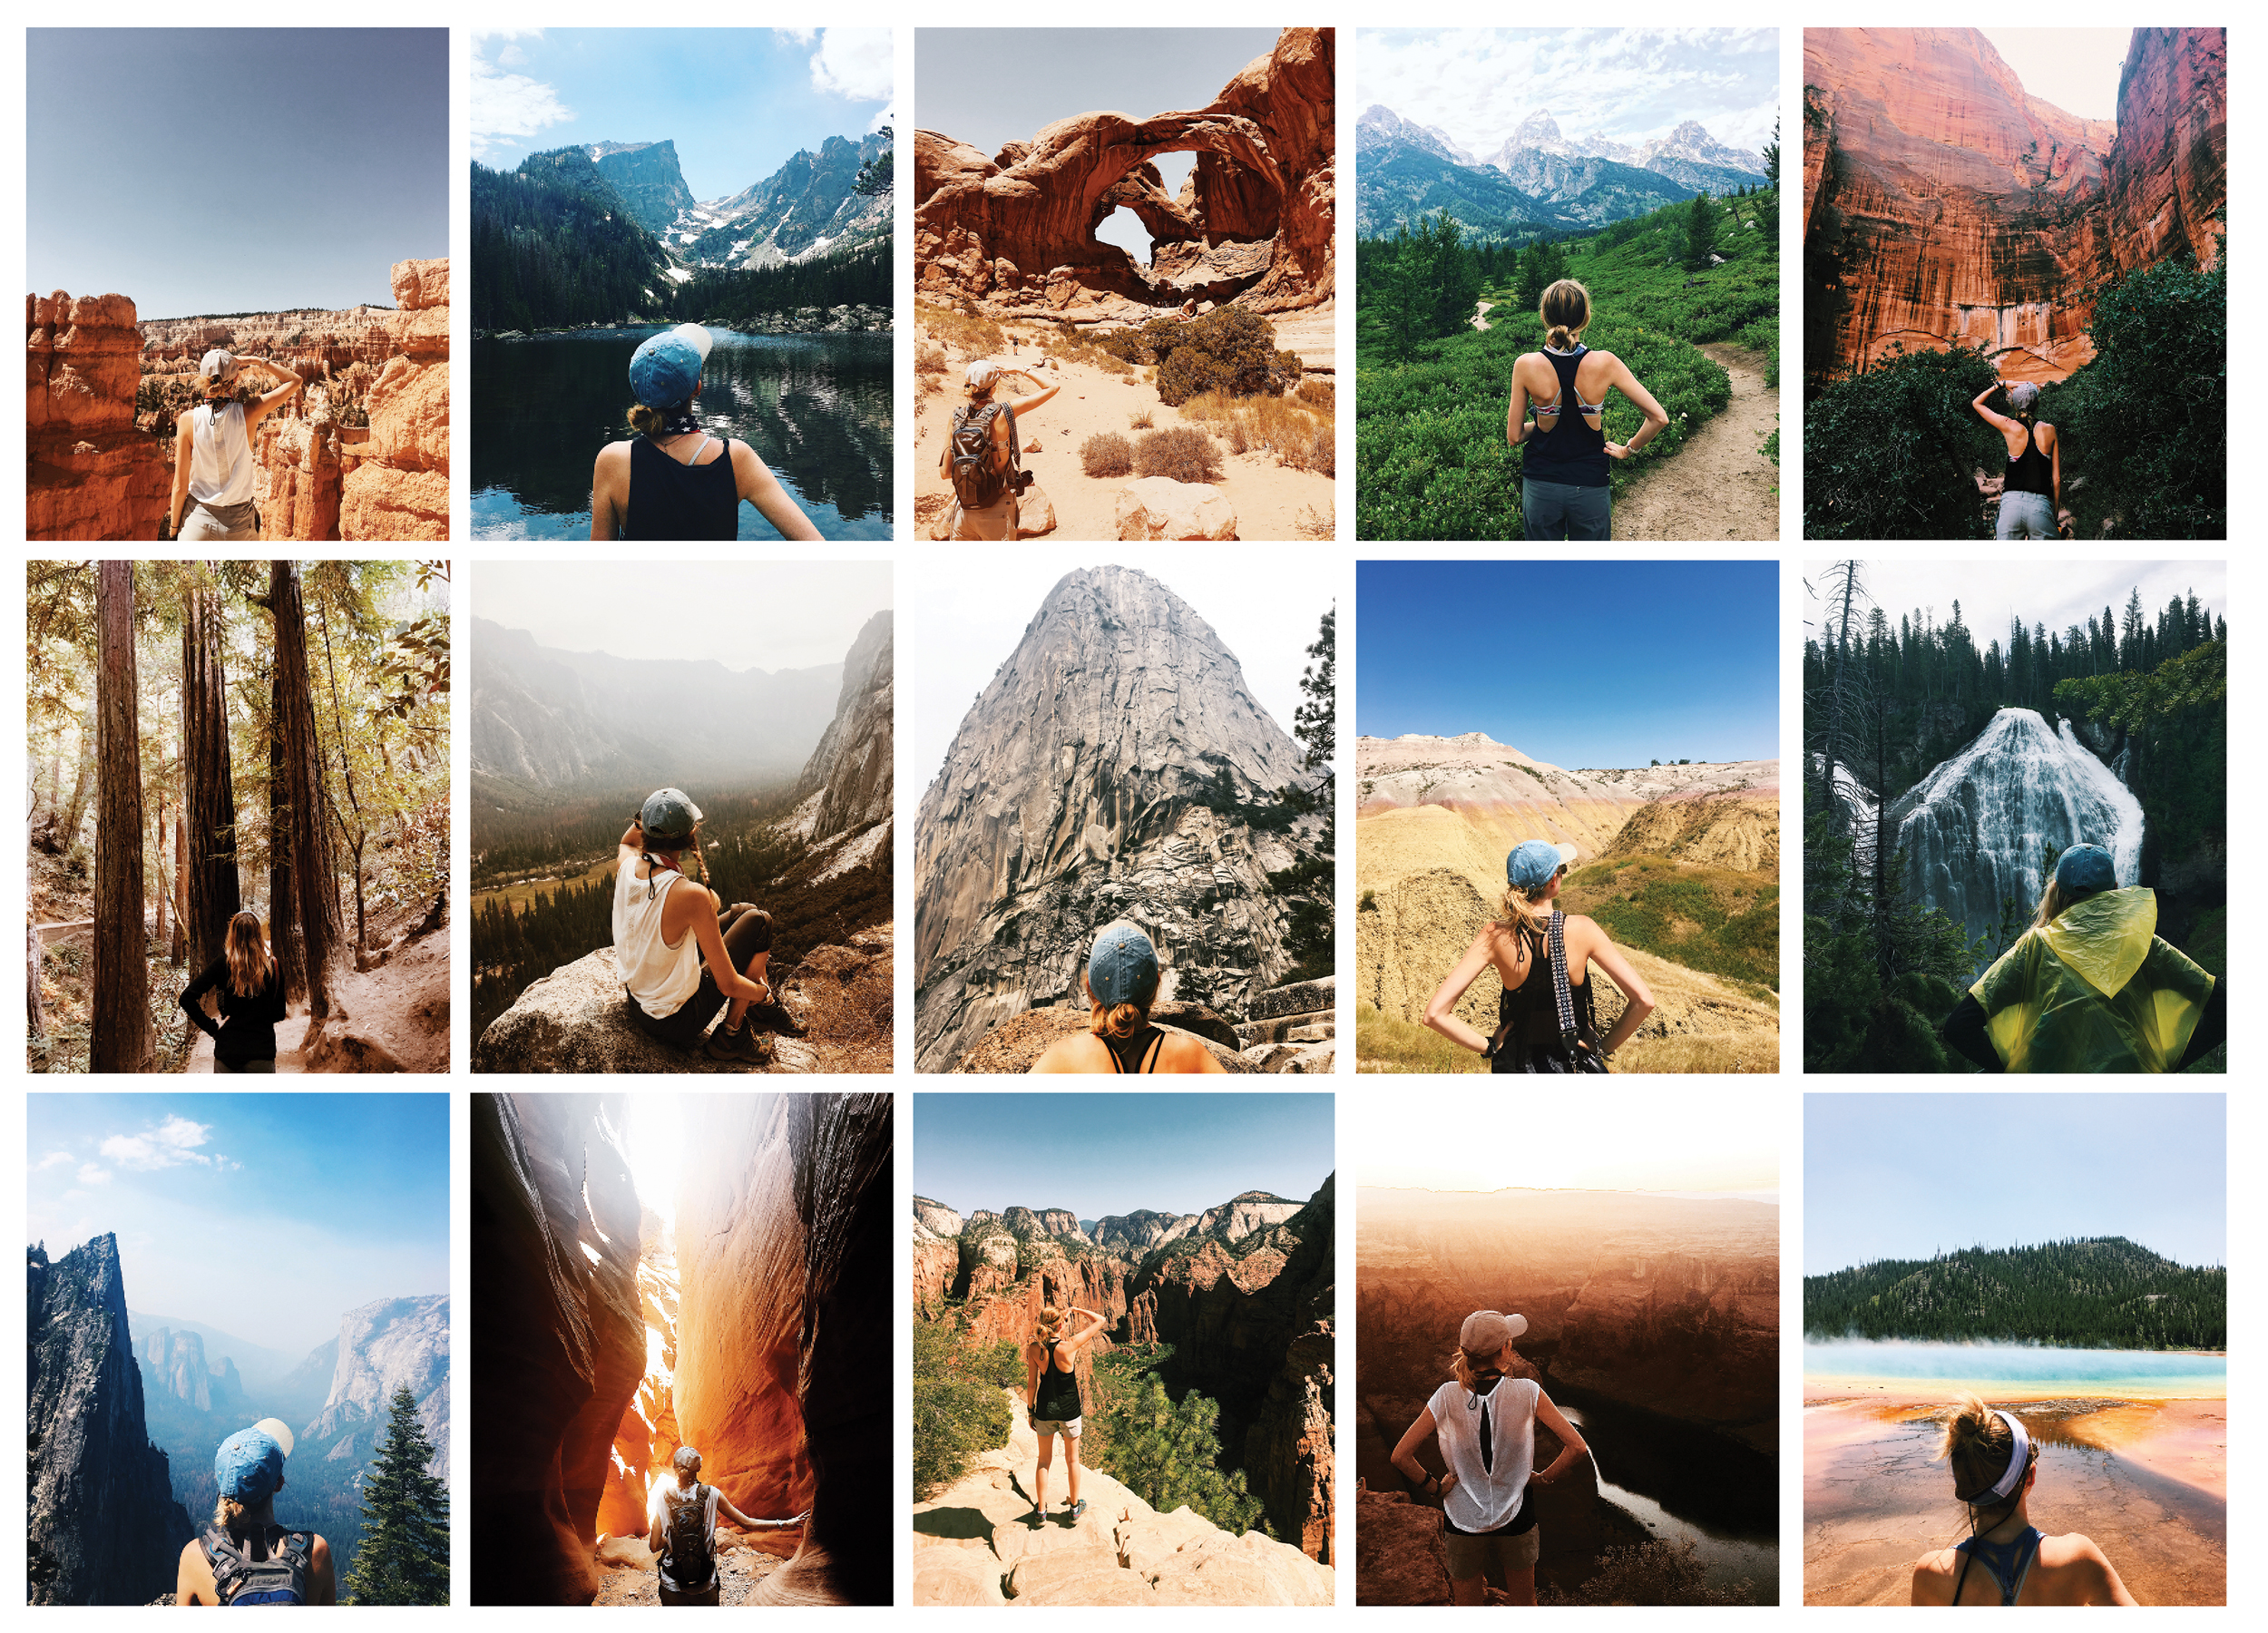 Kayla across America's National Parks  Daytripper 60 Days on the Road Exploring America's National Parks